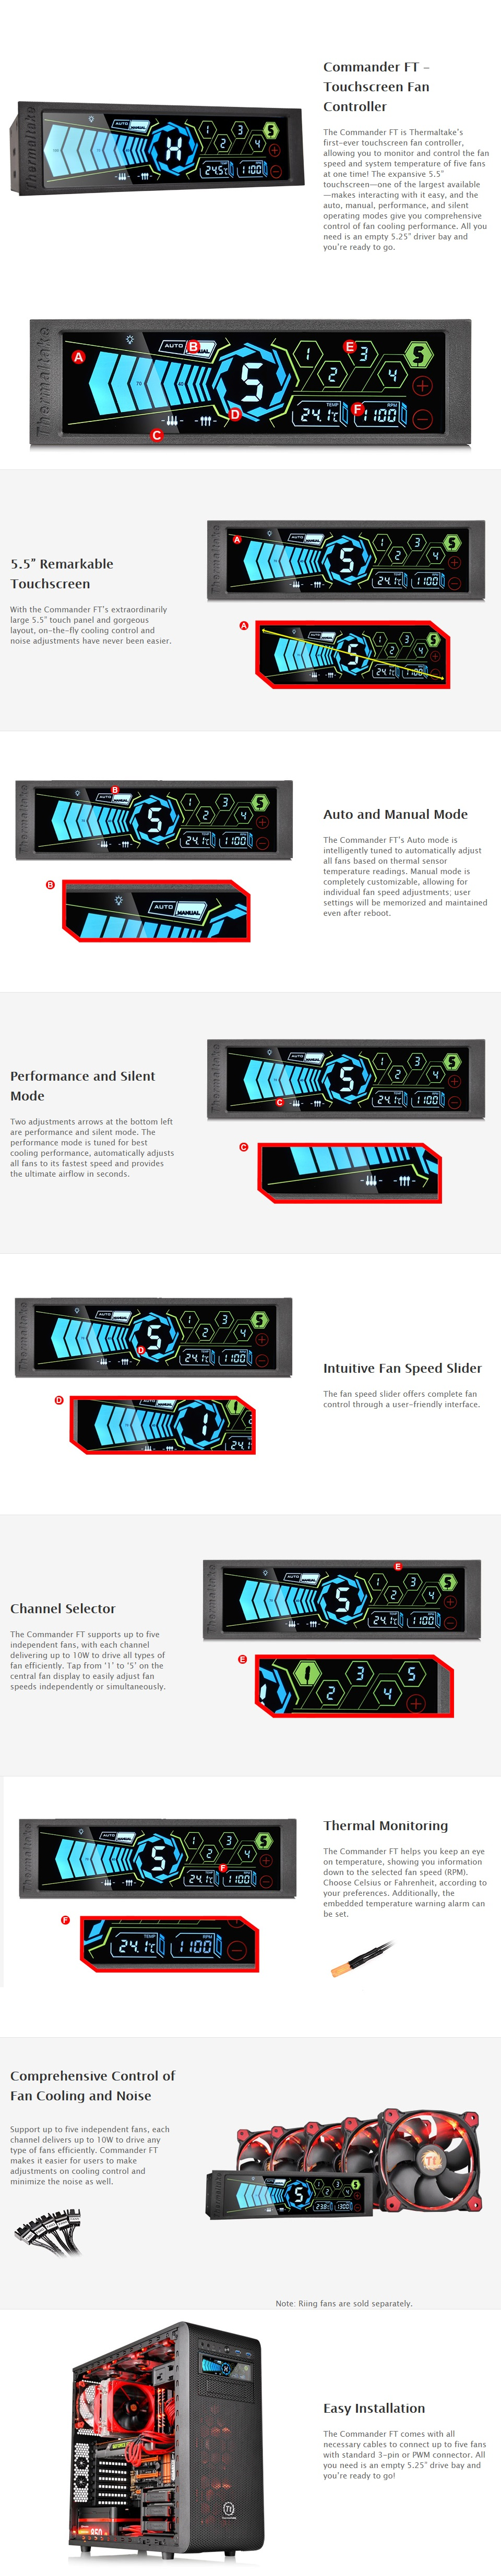 """A large marketing image providing additional information about the product Thermaltake Commander FT Touch Screen LCD 5.25"""" Fan Controller - Additional alt info not provided"""